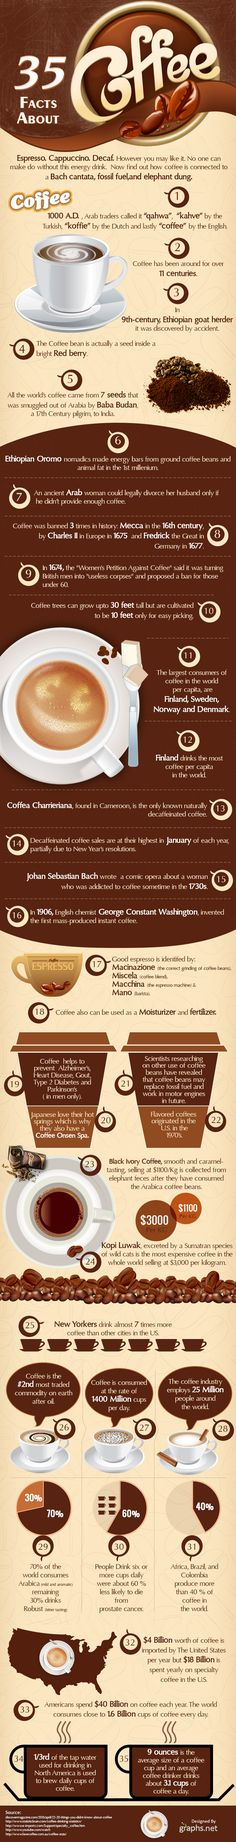 35 Facts About Coffee and a delicious recipe for Morning Joe in the Raw!! #coffee #morning #morningjoe